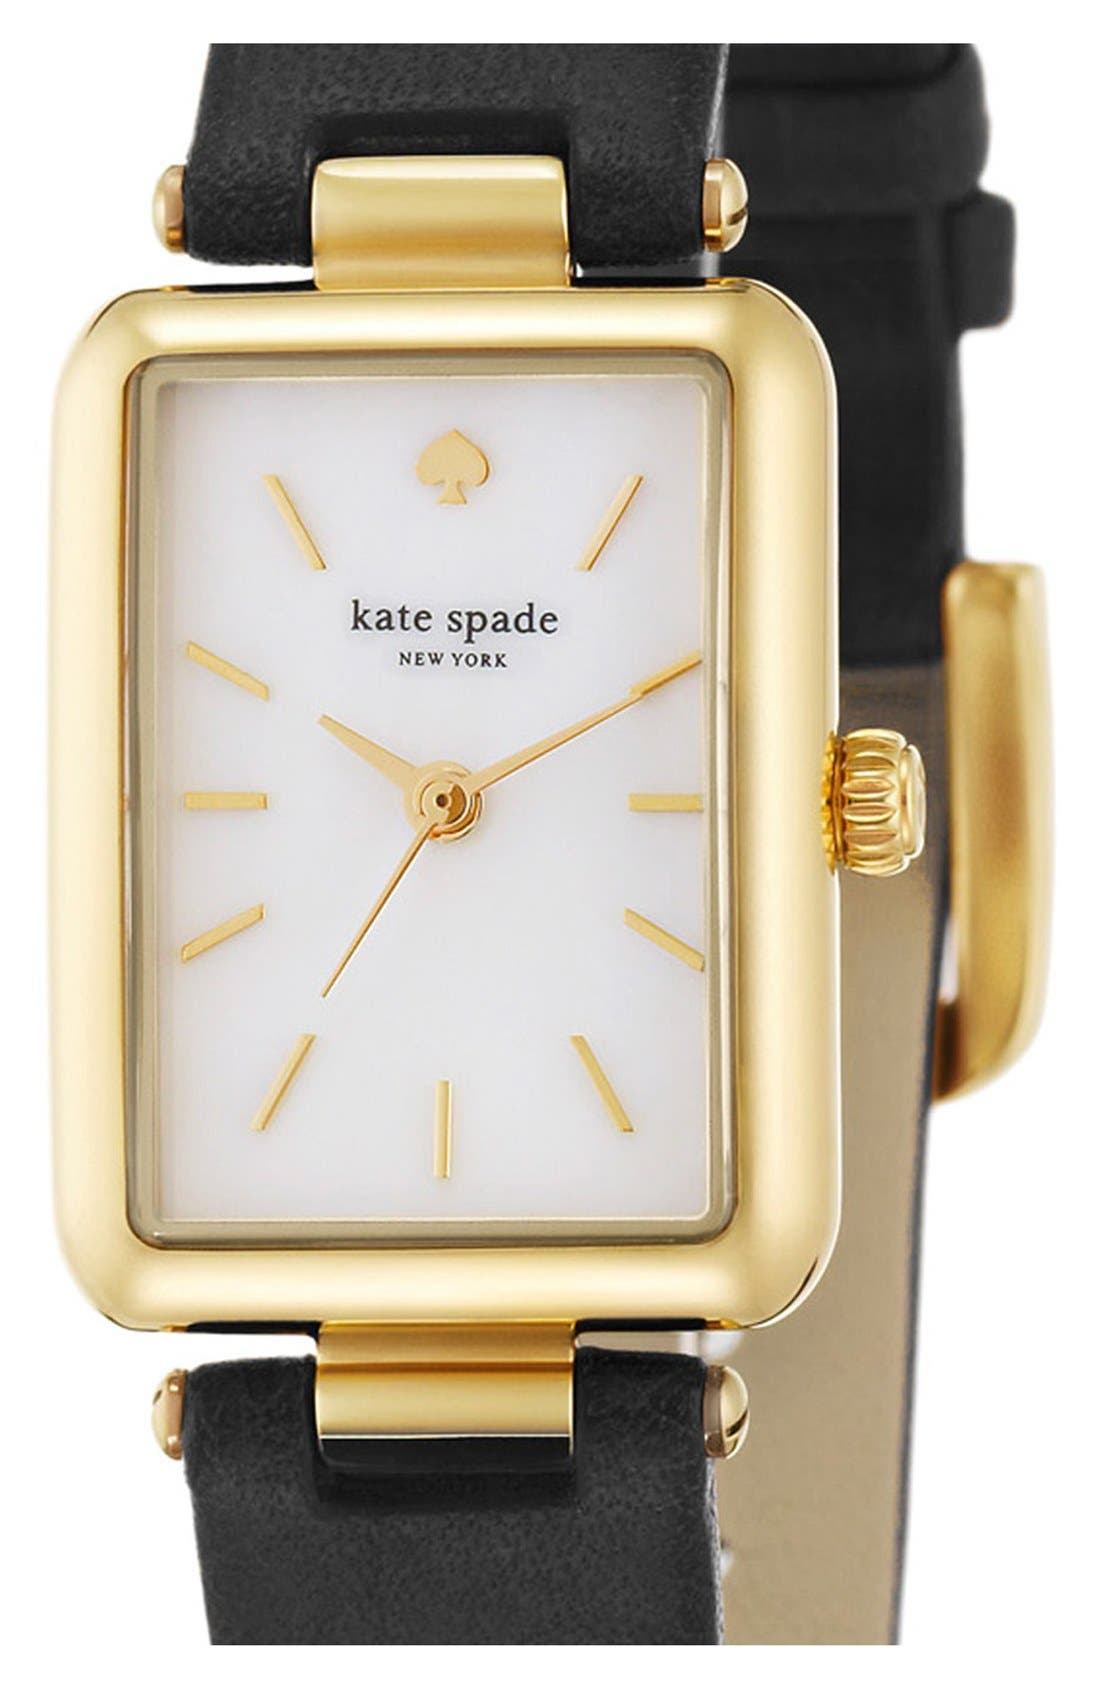 KATE SPADE NEW YORK, 'paley' rectangular leather strap watch, 21mm x 28mm, Alternate thumbnail 4, color, 001